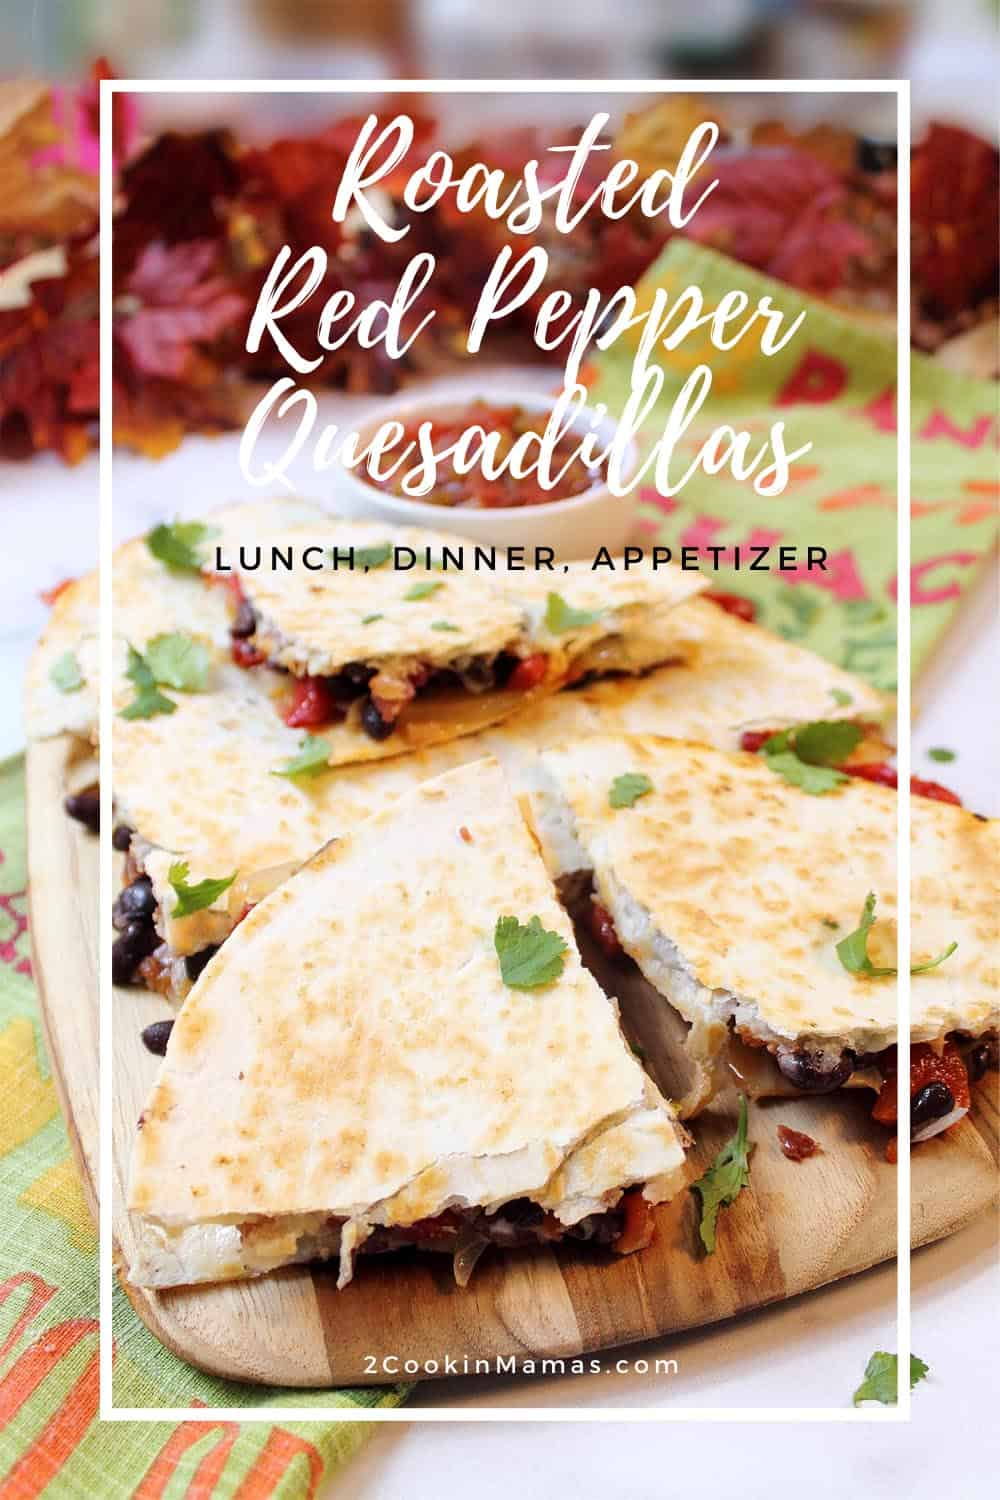 How to Make Roasted Red Pepper Quesadillas